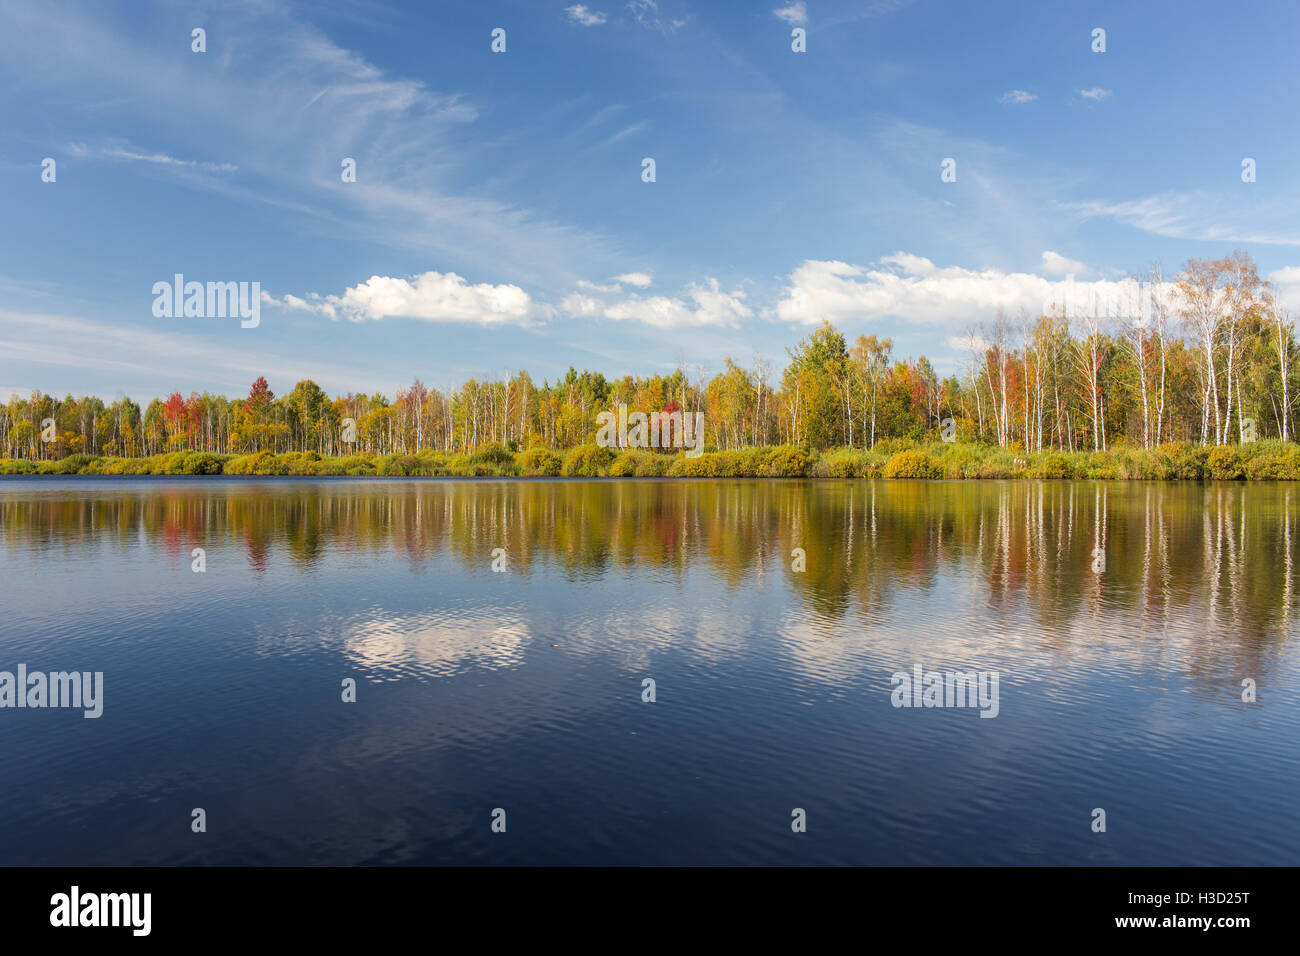 Wild nature in the autumn sunny day. - Stock Image